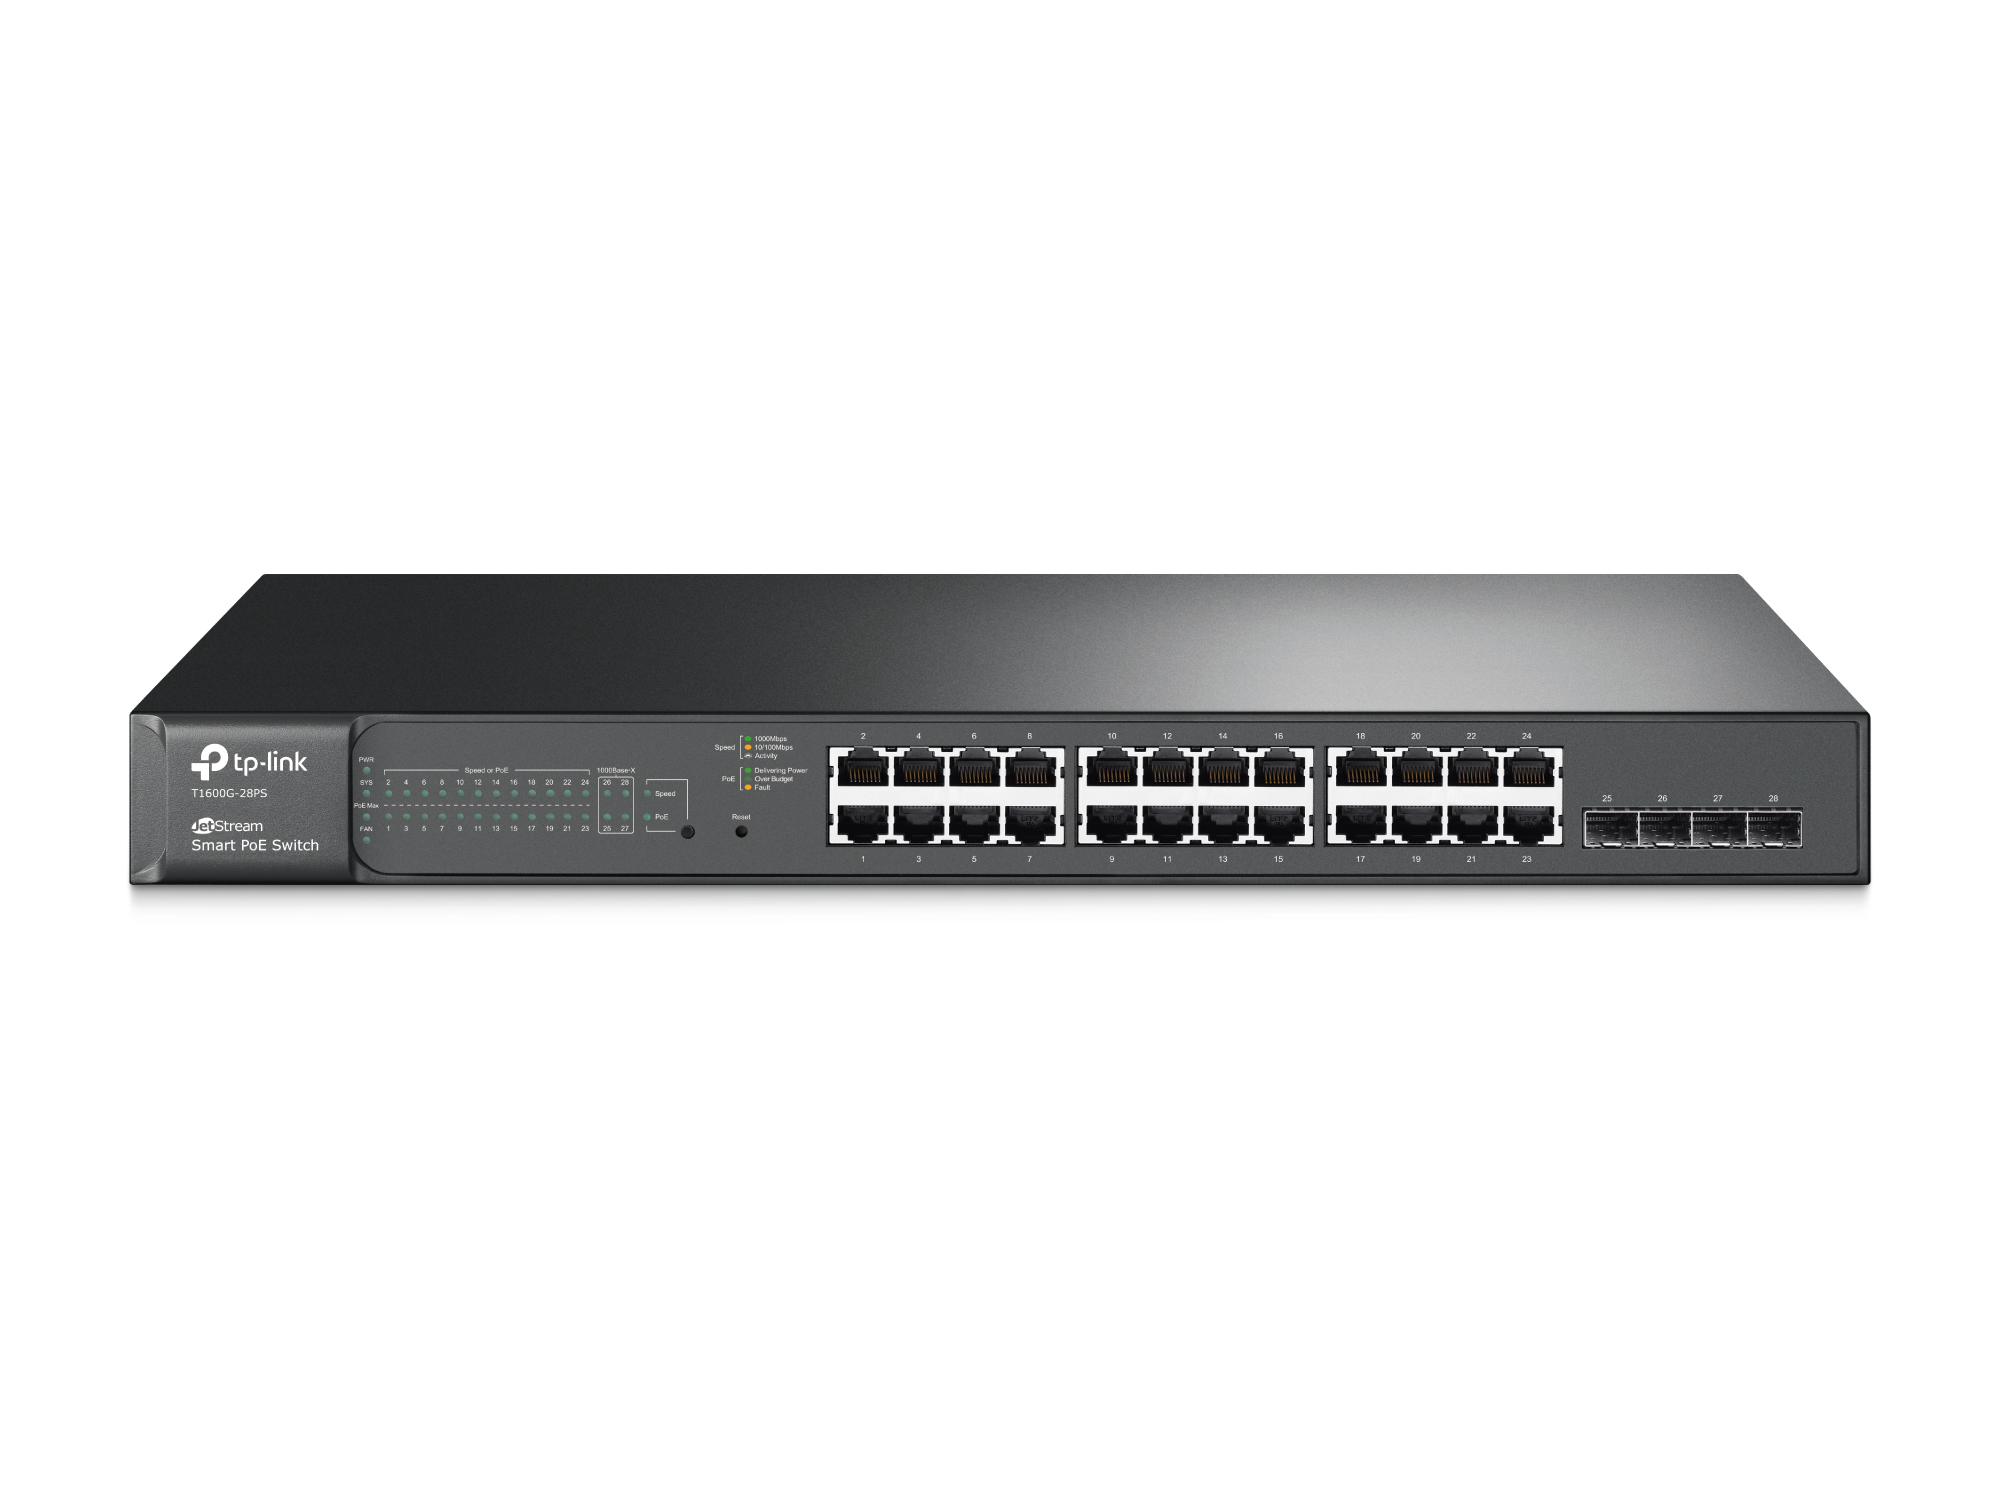 TP-LINK SWITCHING JetStream 24-PORT Gigabit Smart PoE+ Switch With 4 SFP Slots T1600G-28PS(TL-SG2424P)